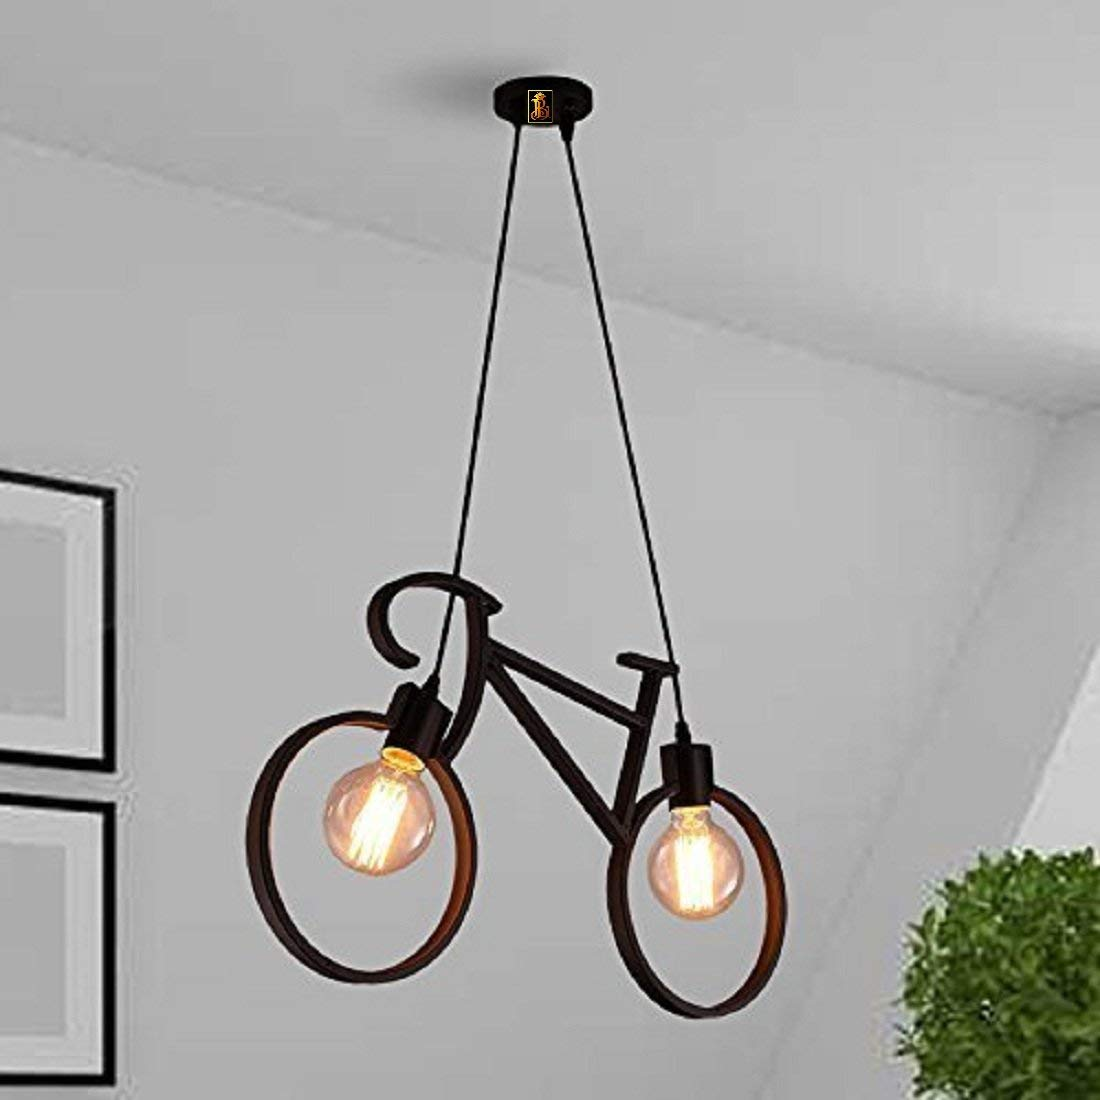 Antique Cycle Shape for Home Decor Light